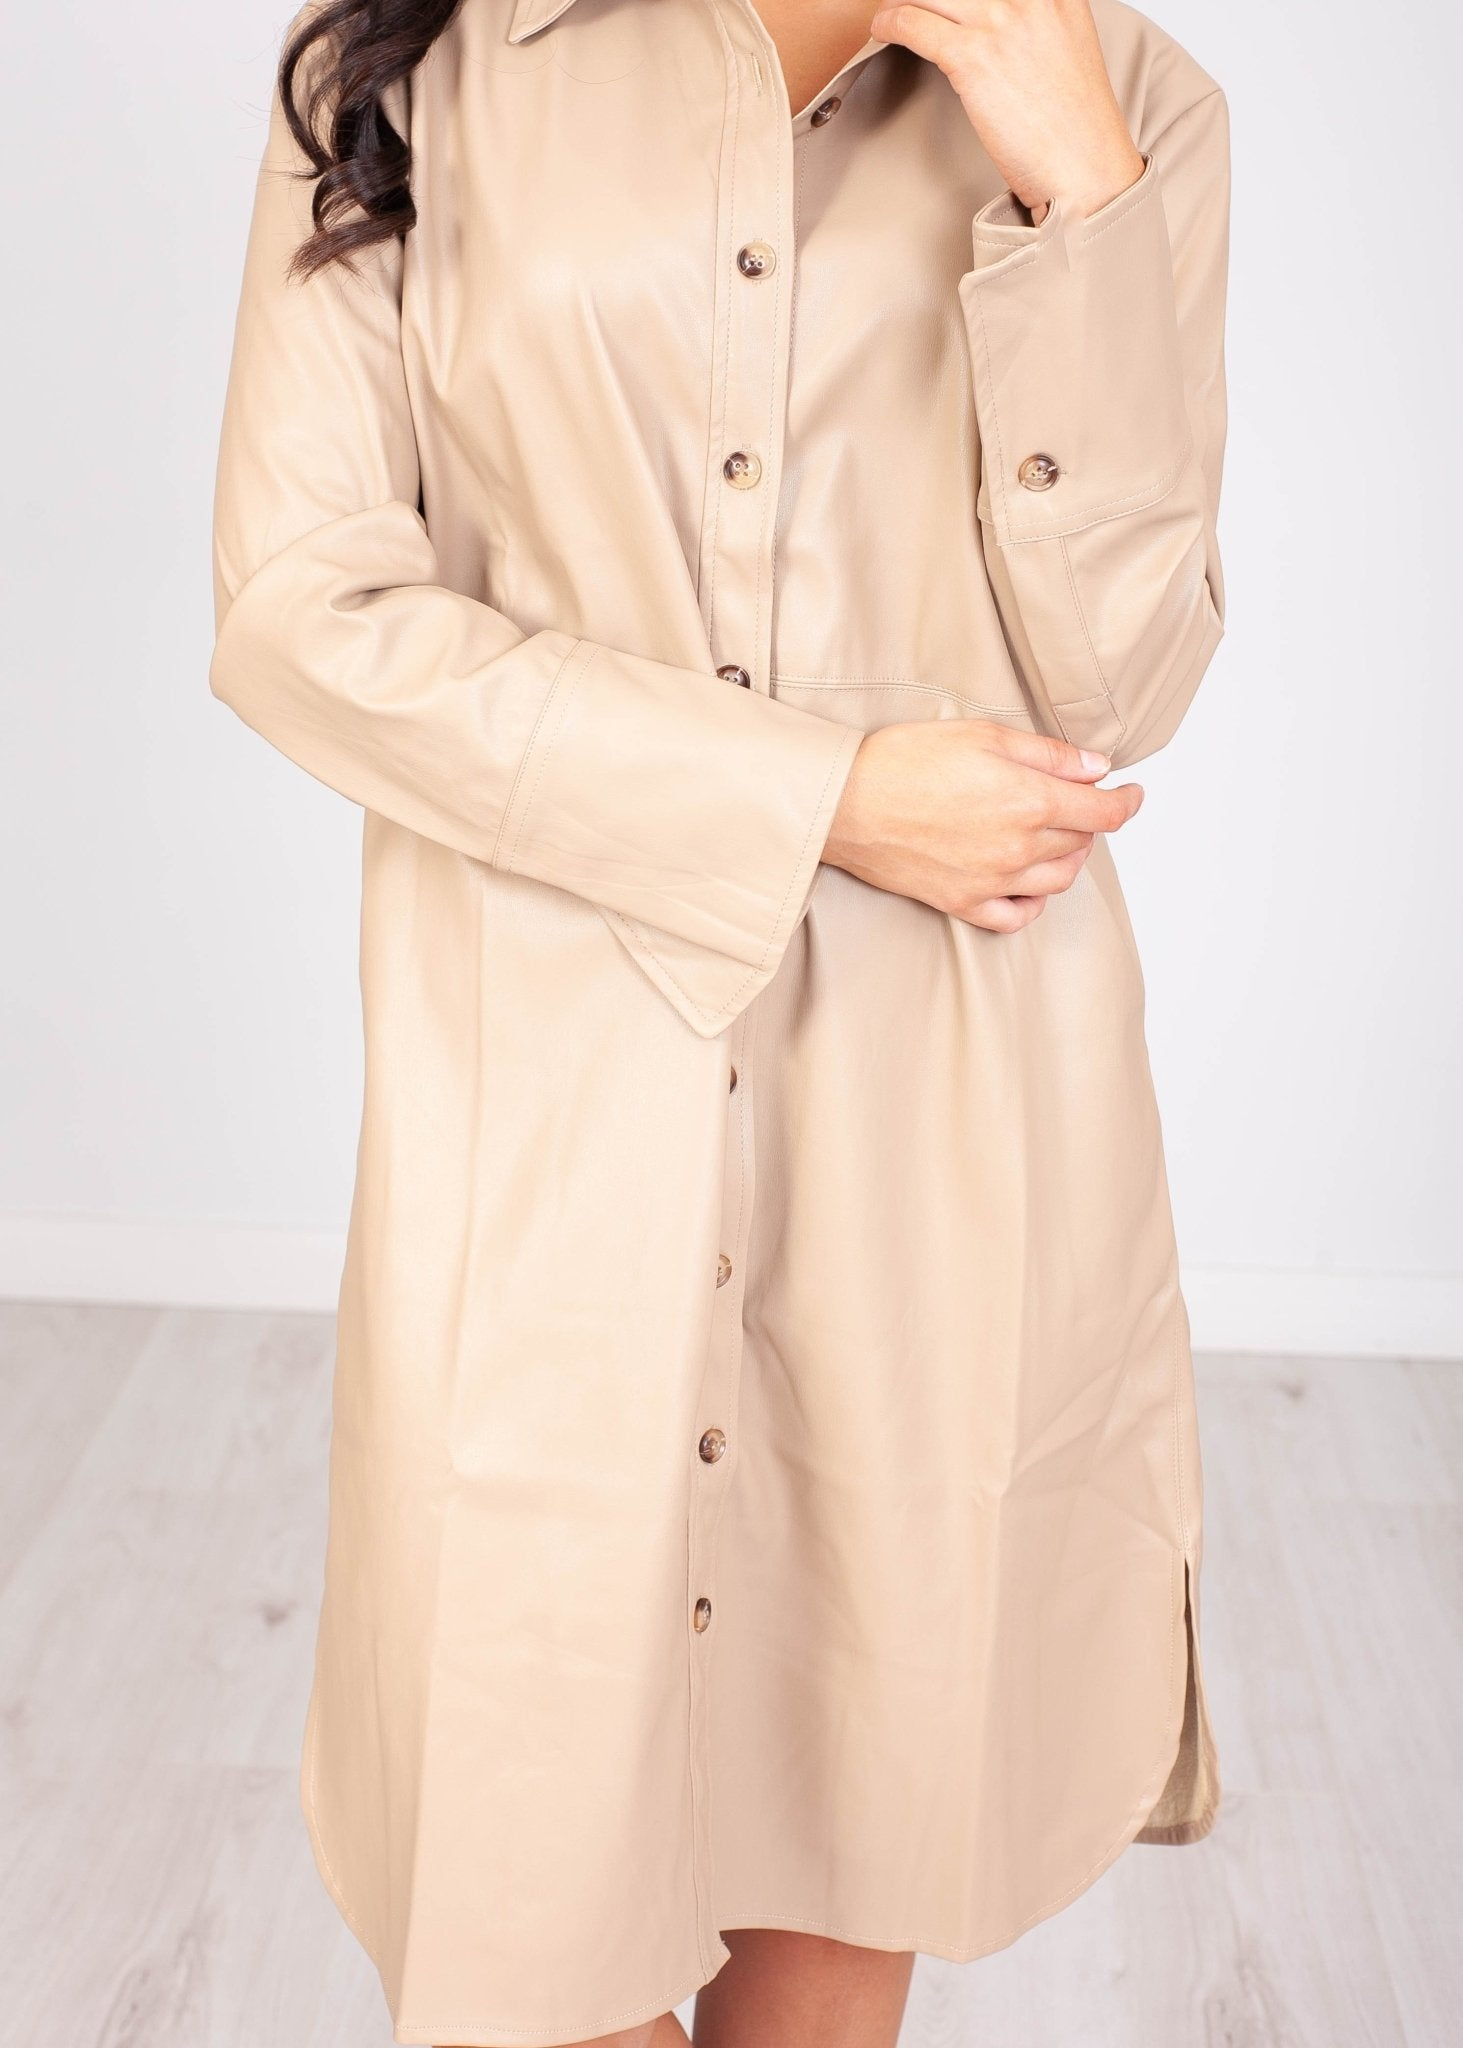 Priya Beige Leather Shirt Dress - The Walk in Wardrobe